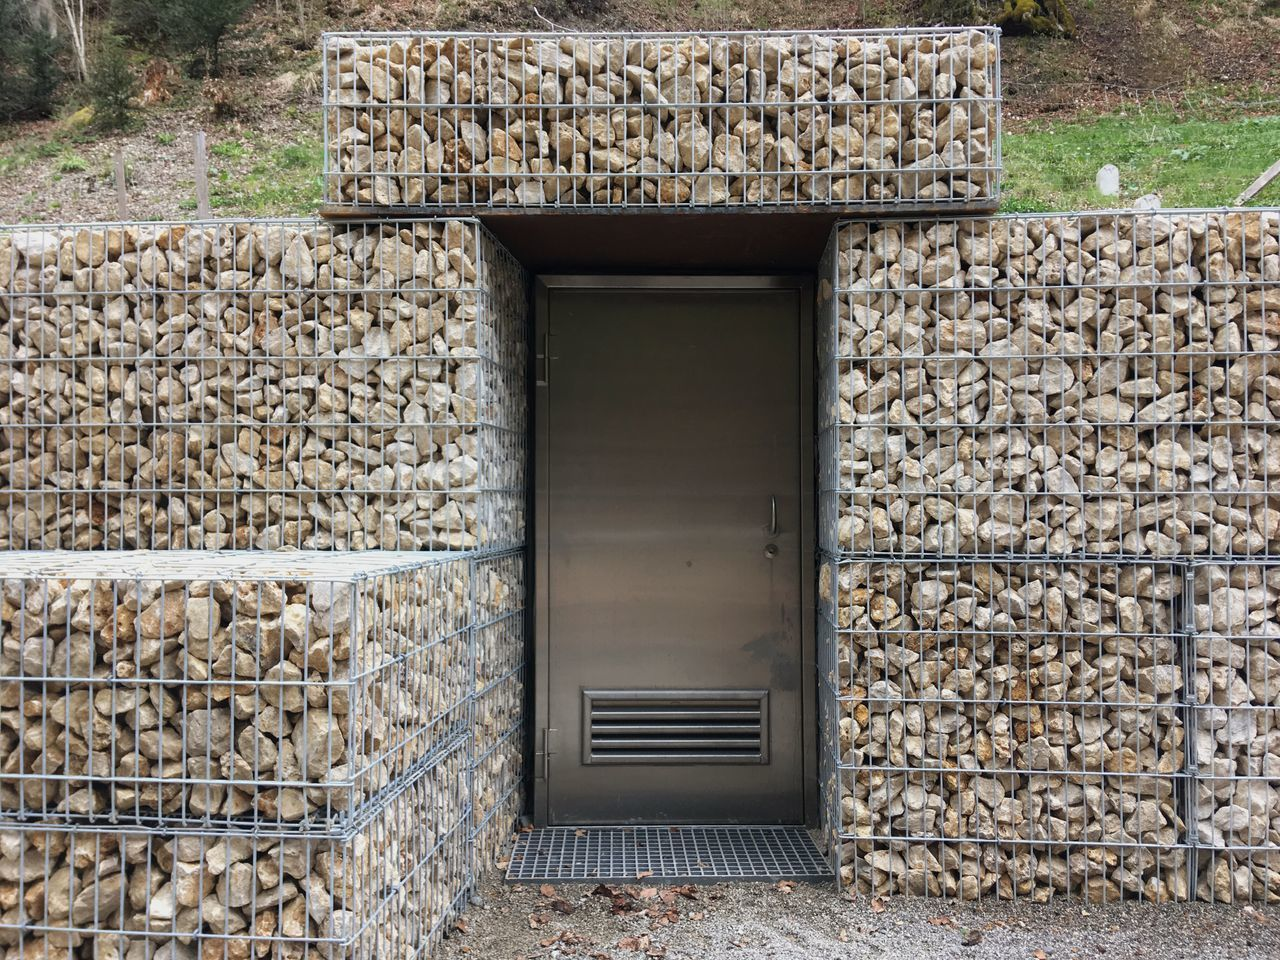 Stone Wall Outdoors Built Structure No People Day Architecture Stack Building Exterior Stones Shed Stone Cage